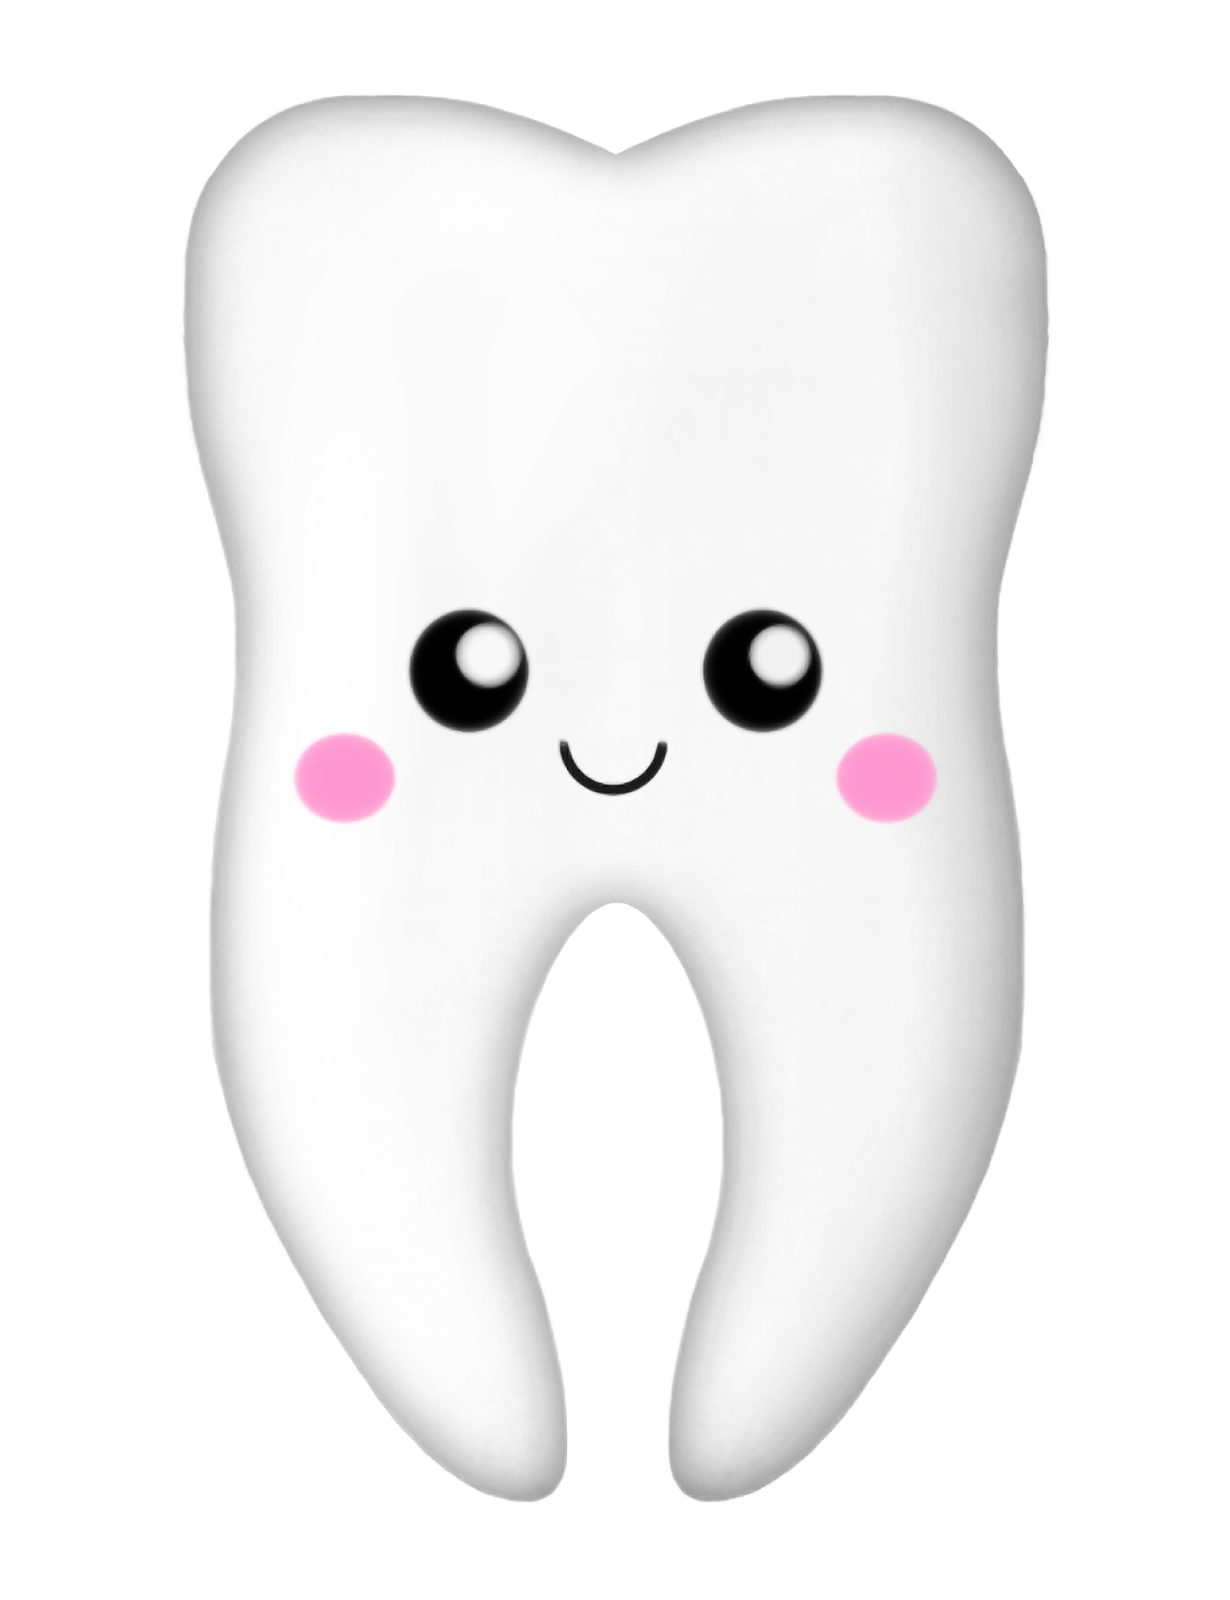 Tooth clipart tongue. Encode to base